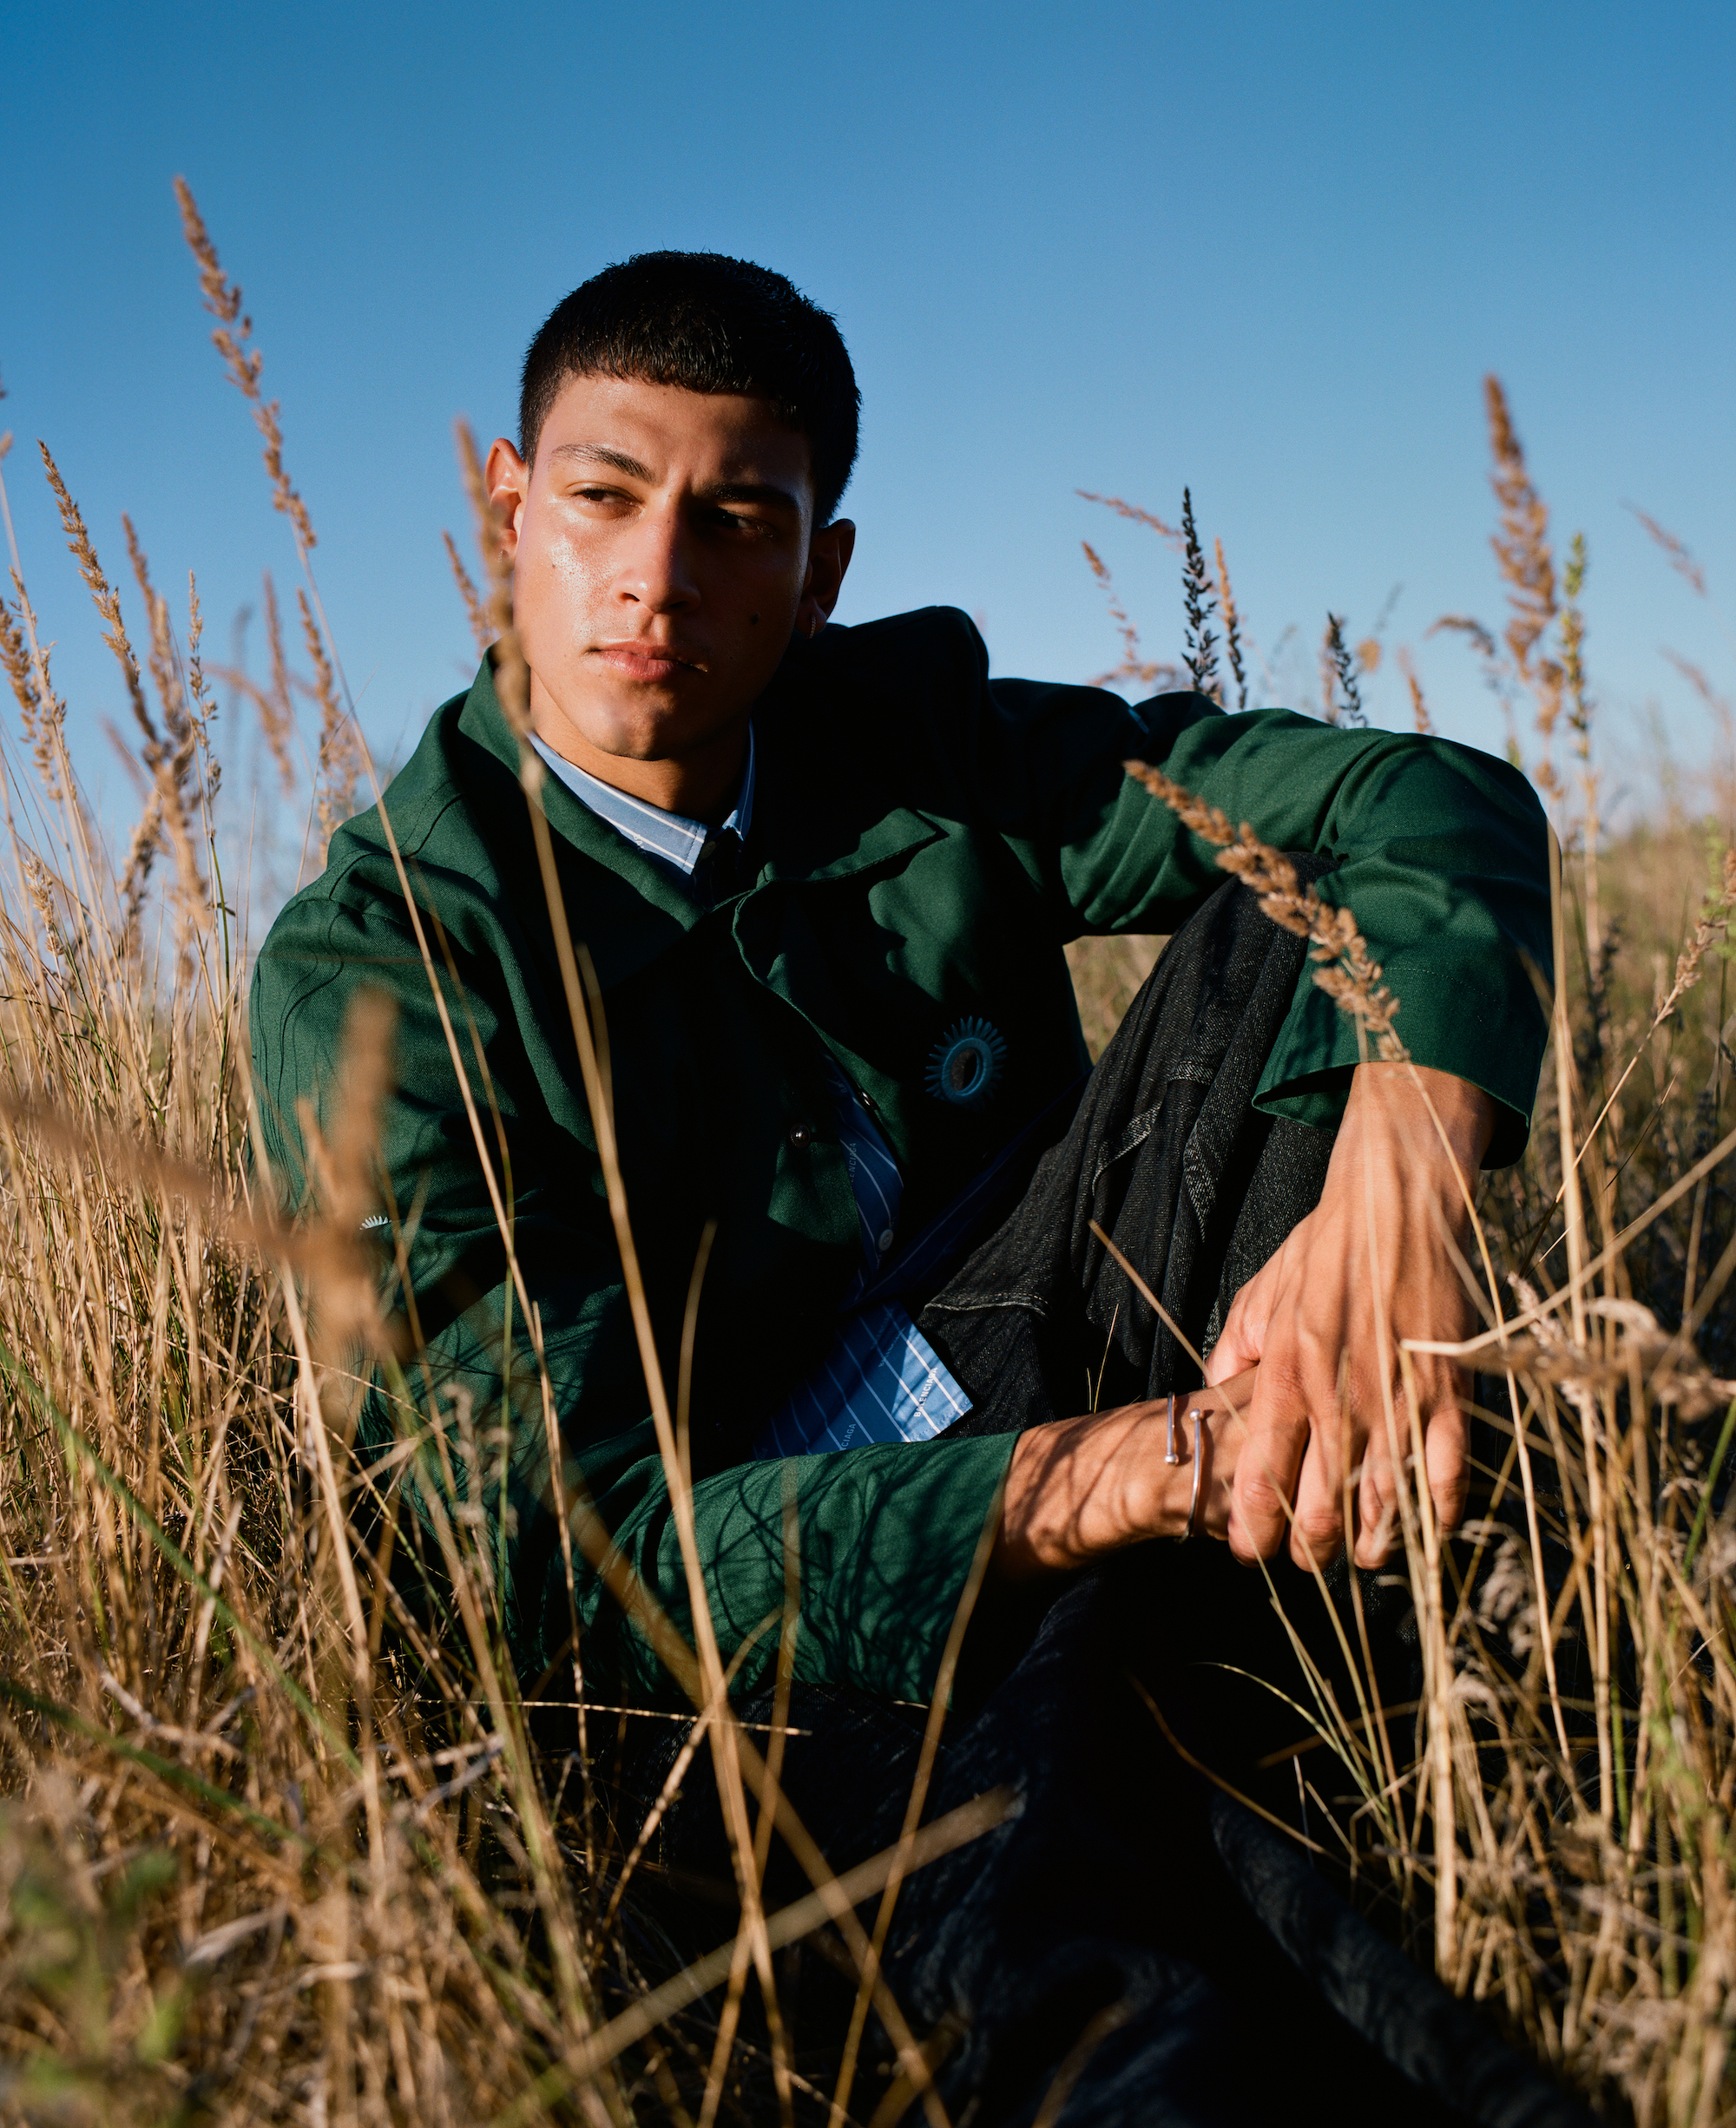 Emilio Sakraya wearings green jacket sitting down